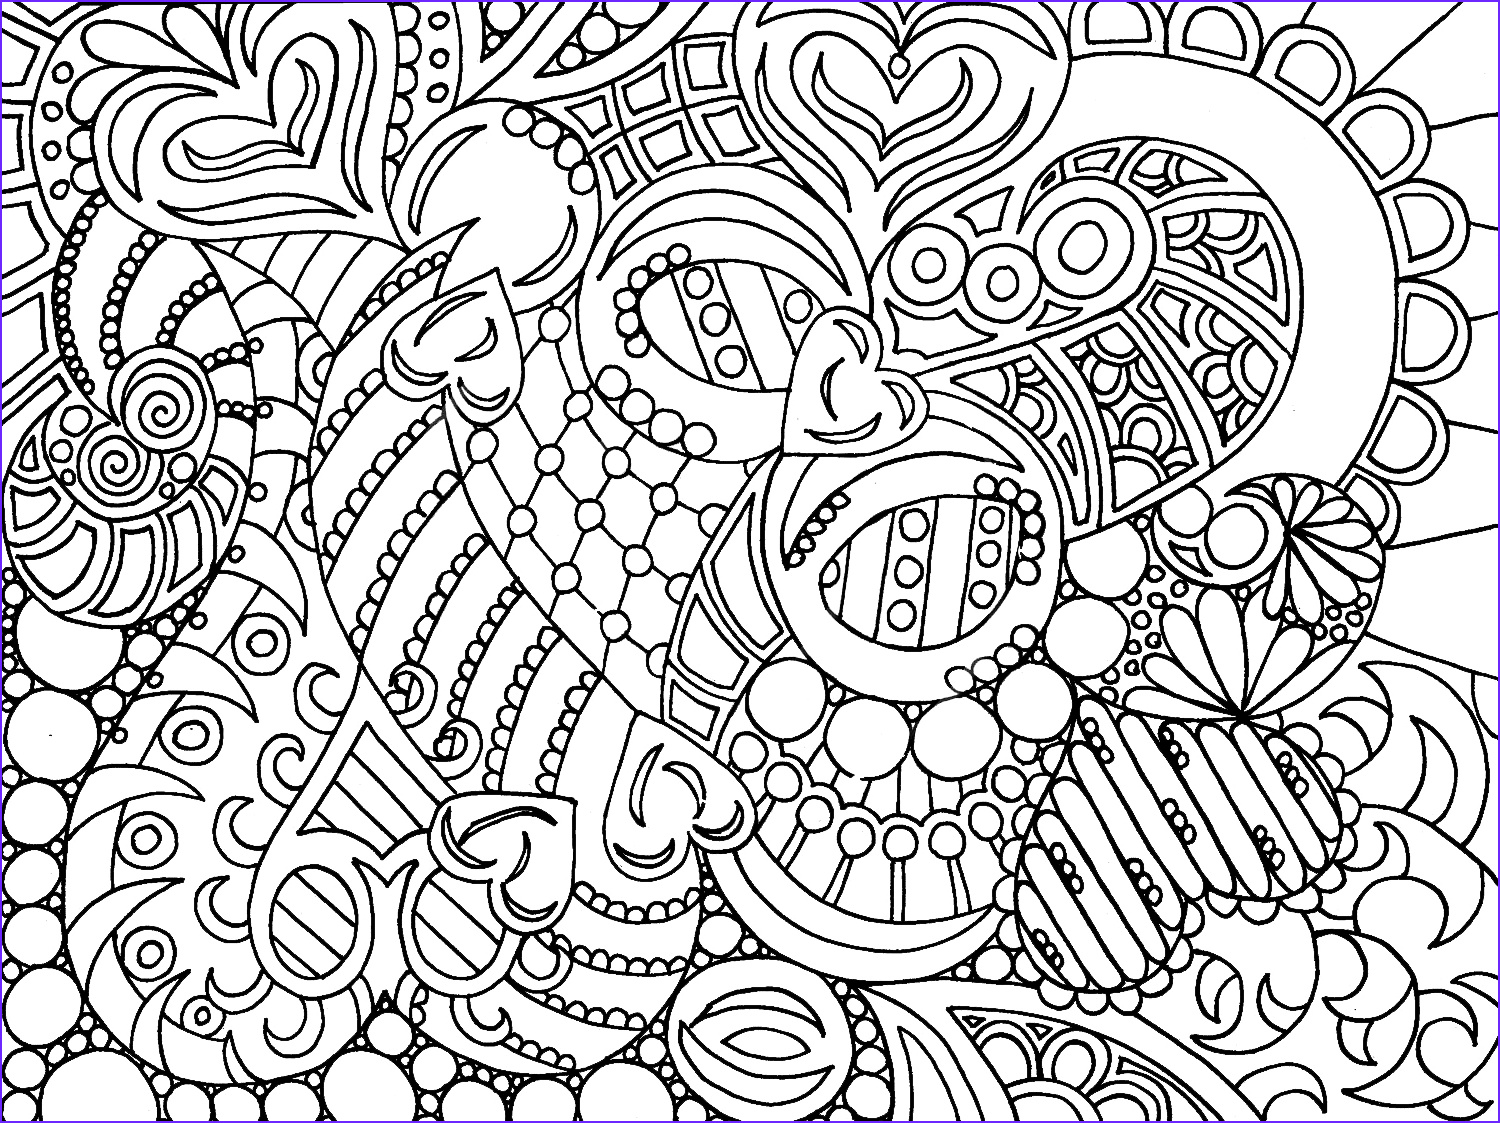 Printable Coloring Pages Adults Inspirational Gallery Free Coloring Pages for Adults